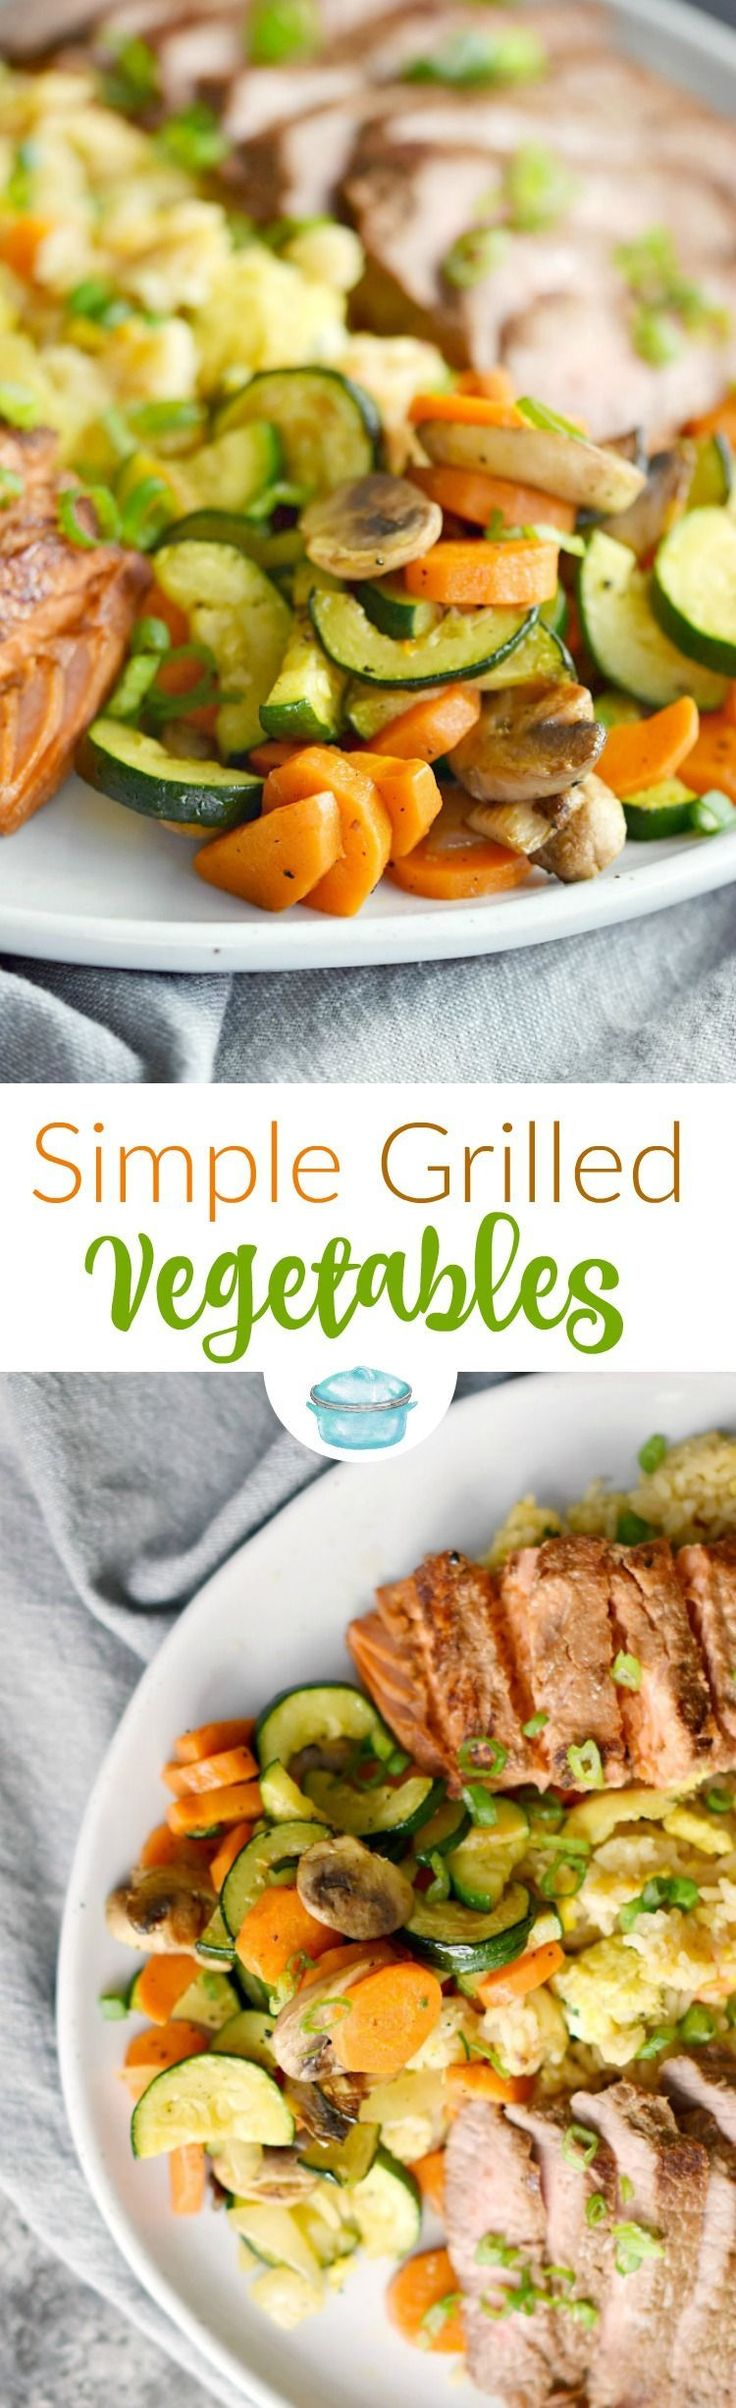 These Simple Grilled Vegetables are packed with flavor and make the perfect side dish any night of the week, and the whole family will love them! #grill #vegetables #dinnerfortwo #paleo #whole30 via @cookwithcurls http://grillidea.com/best-smoker-grills/